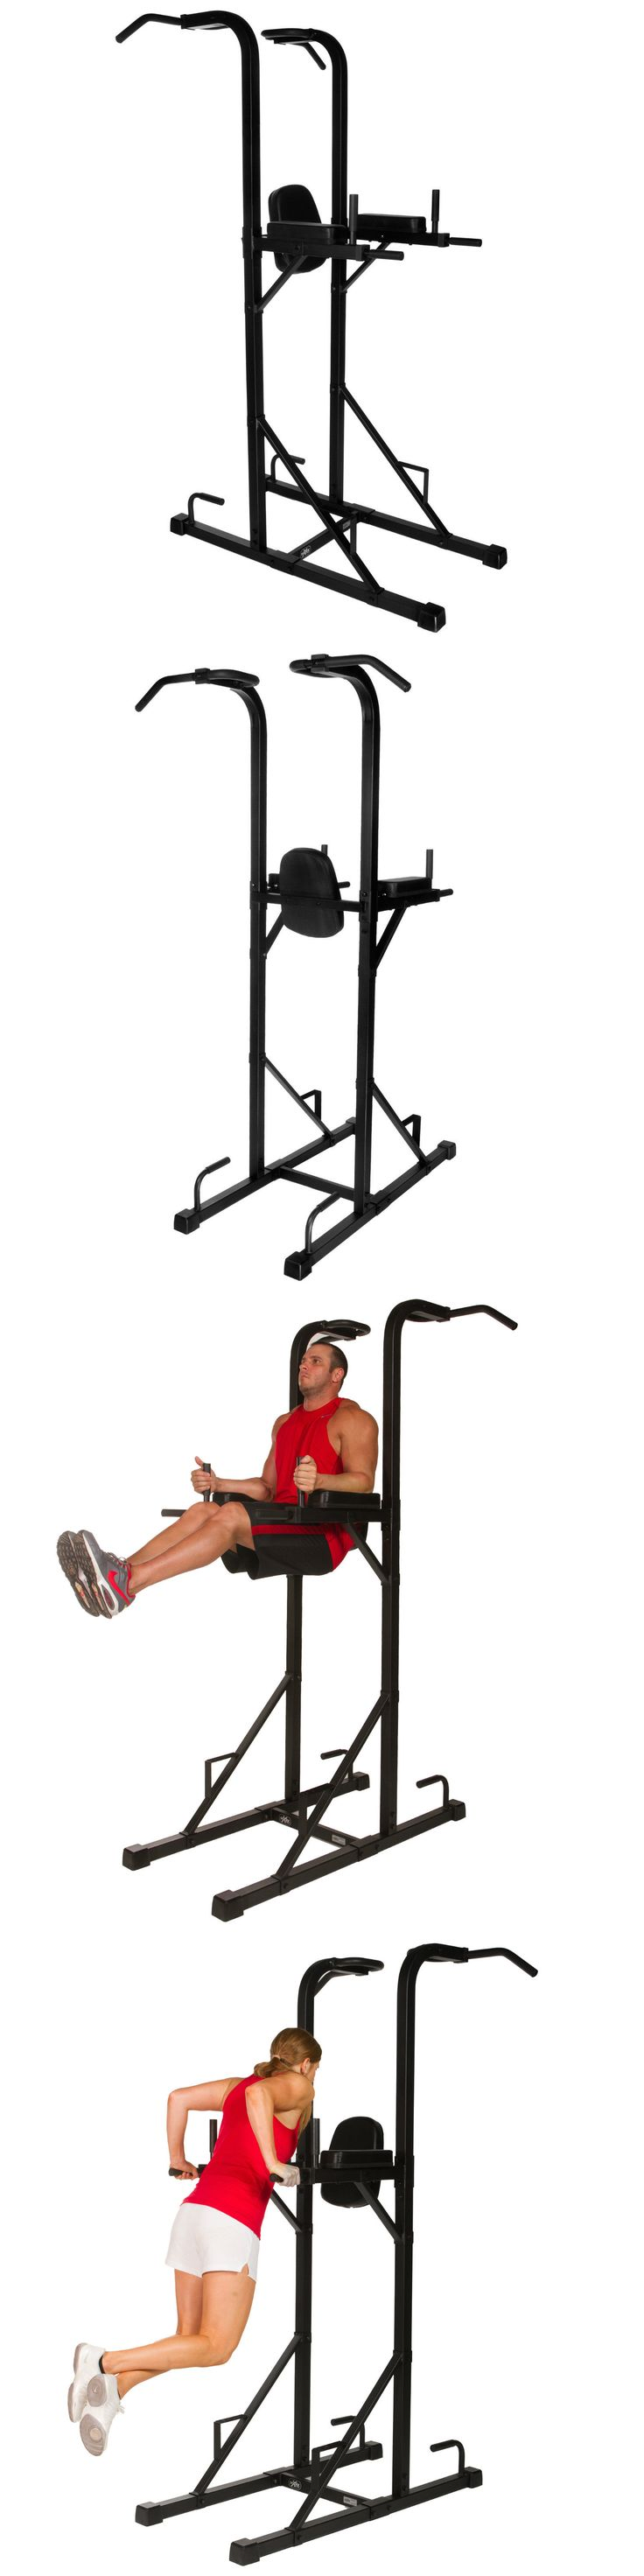 Pull Up Bars 179816: Xmark Fitness Power Tower With Dip Stand And Split Grip Pull-Up Bar Xm-4451 -> BUY IT NOW ONLY: $162.0 on eBay!